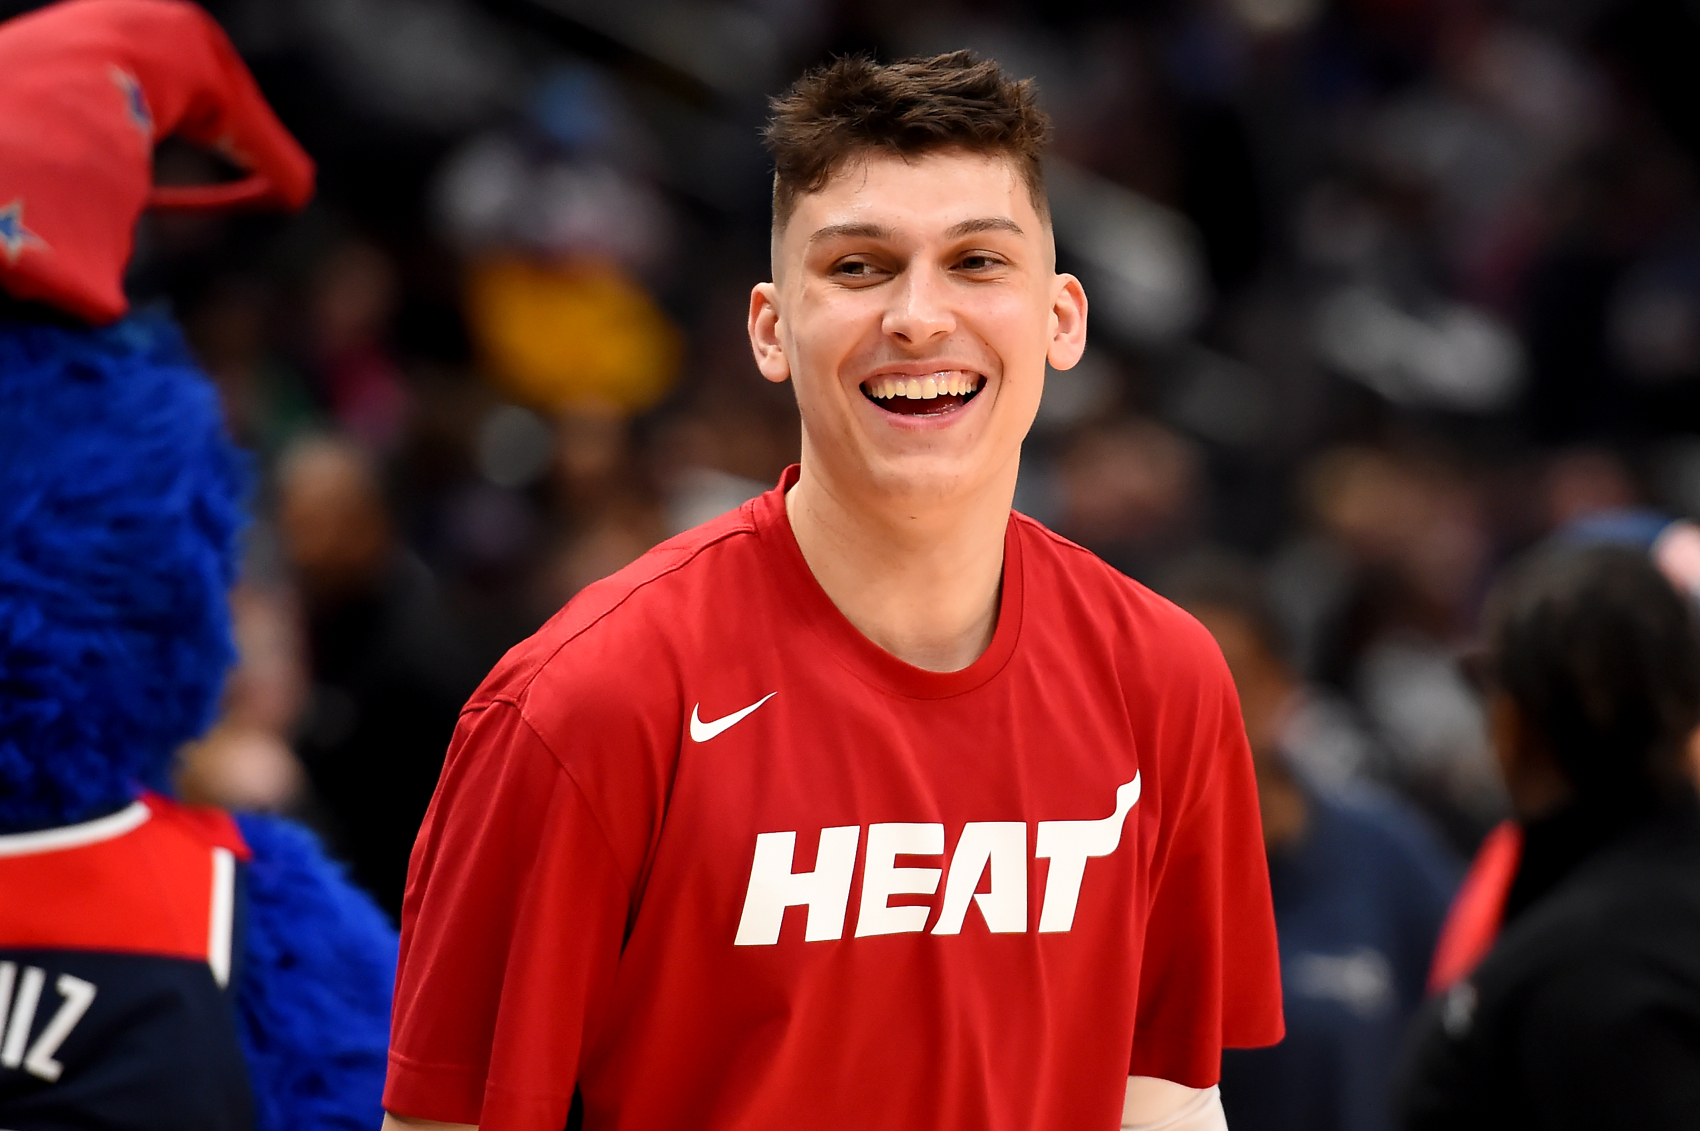 Tyler Herro has had an incredible rookie season with the Miami Heat. He just accomplished something no other rookie has this century.